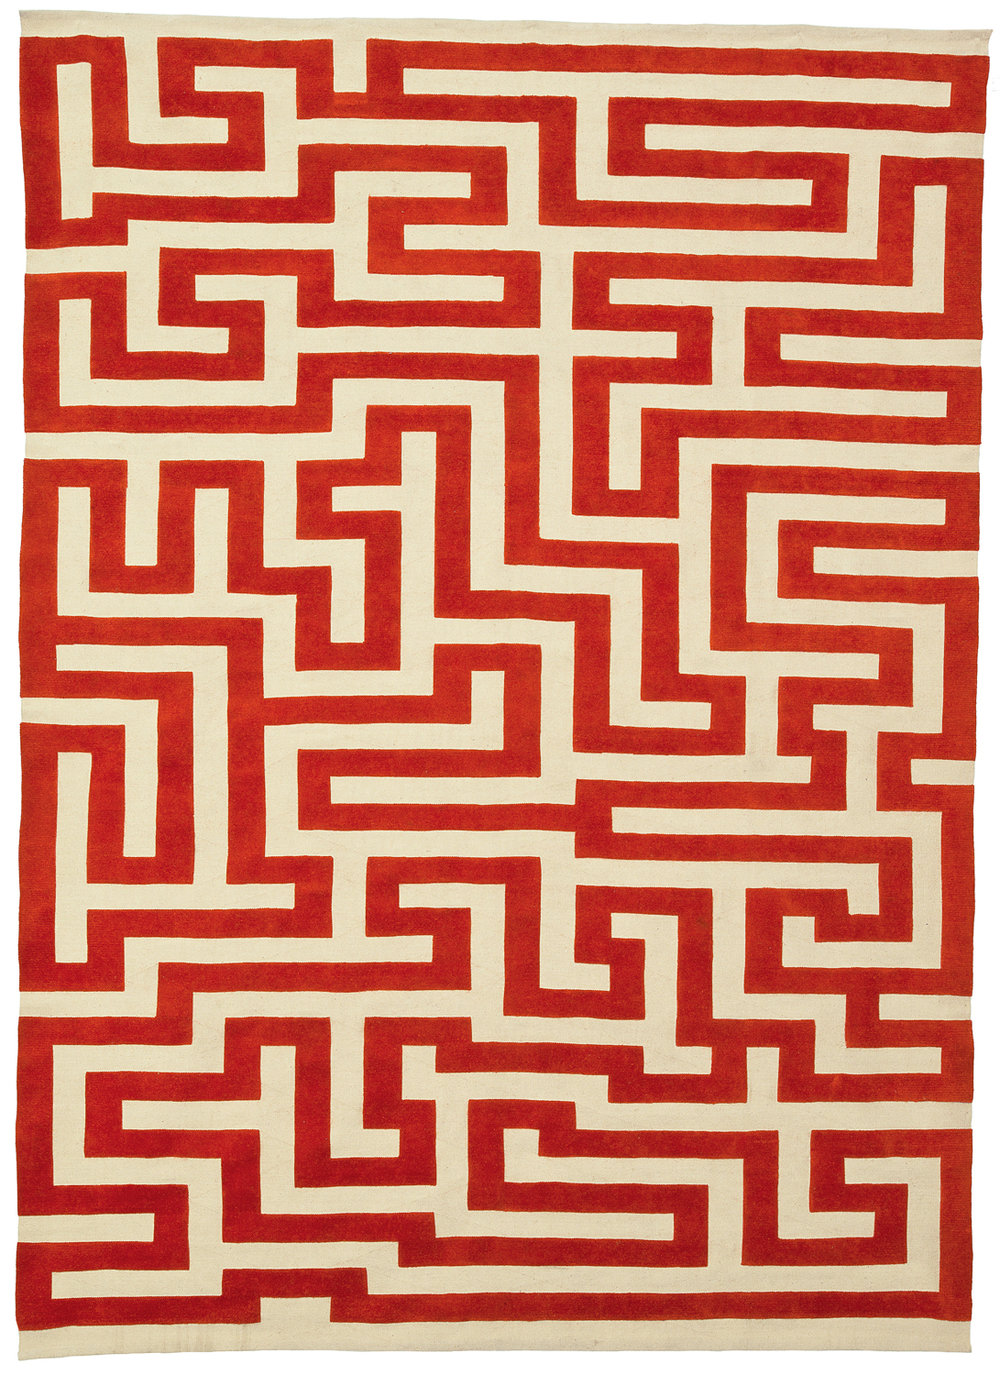 Red Meander, Anni Albers. Hand-knotted, handspun wool. (7 × 10 feet)